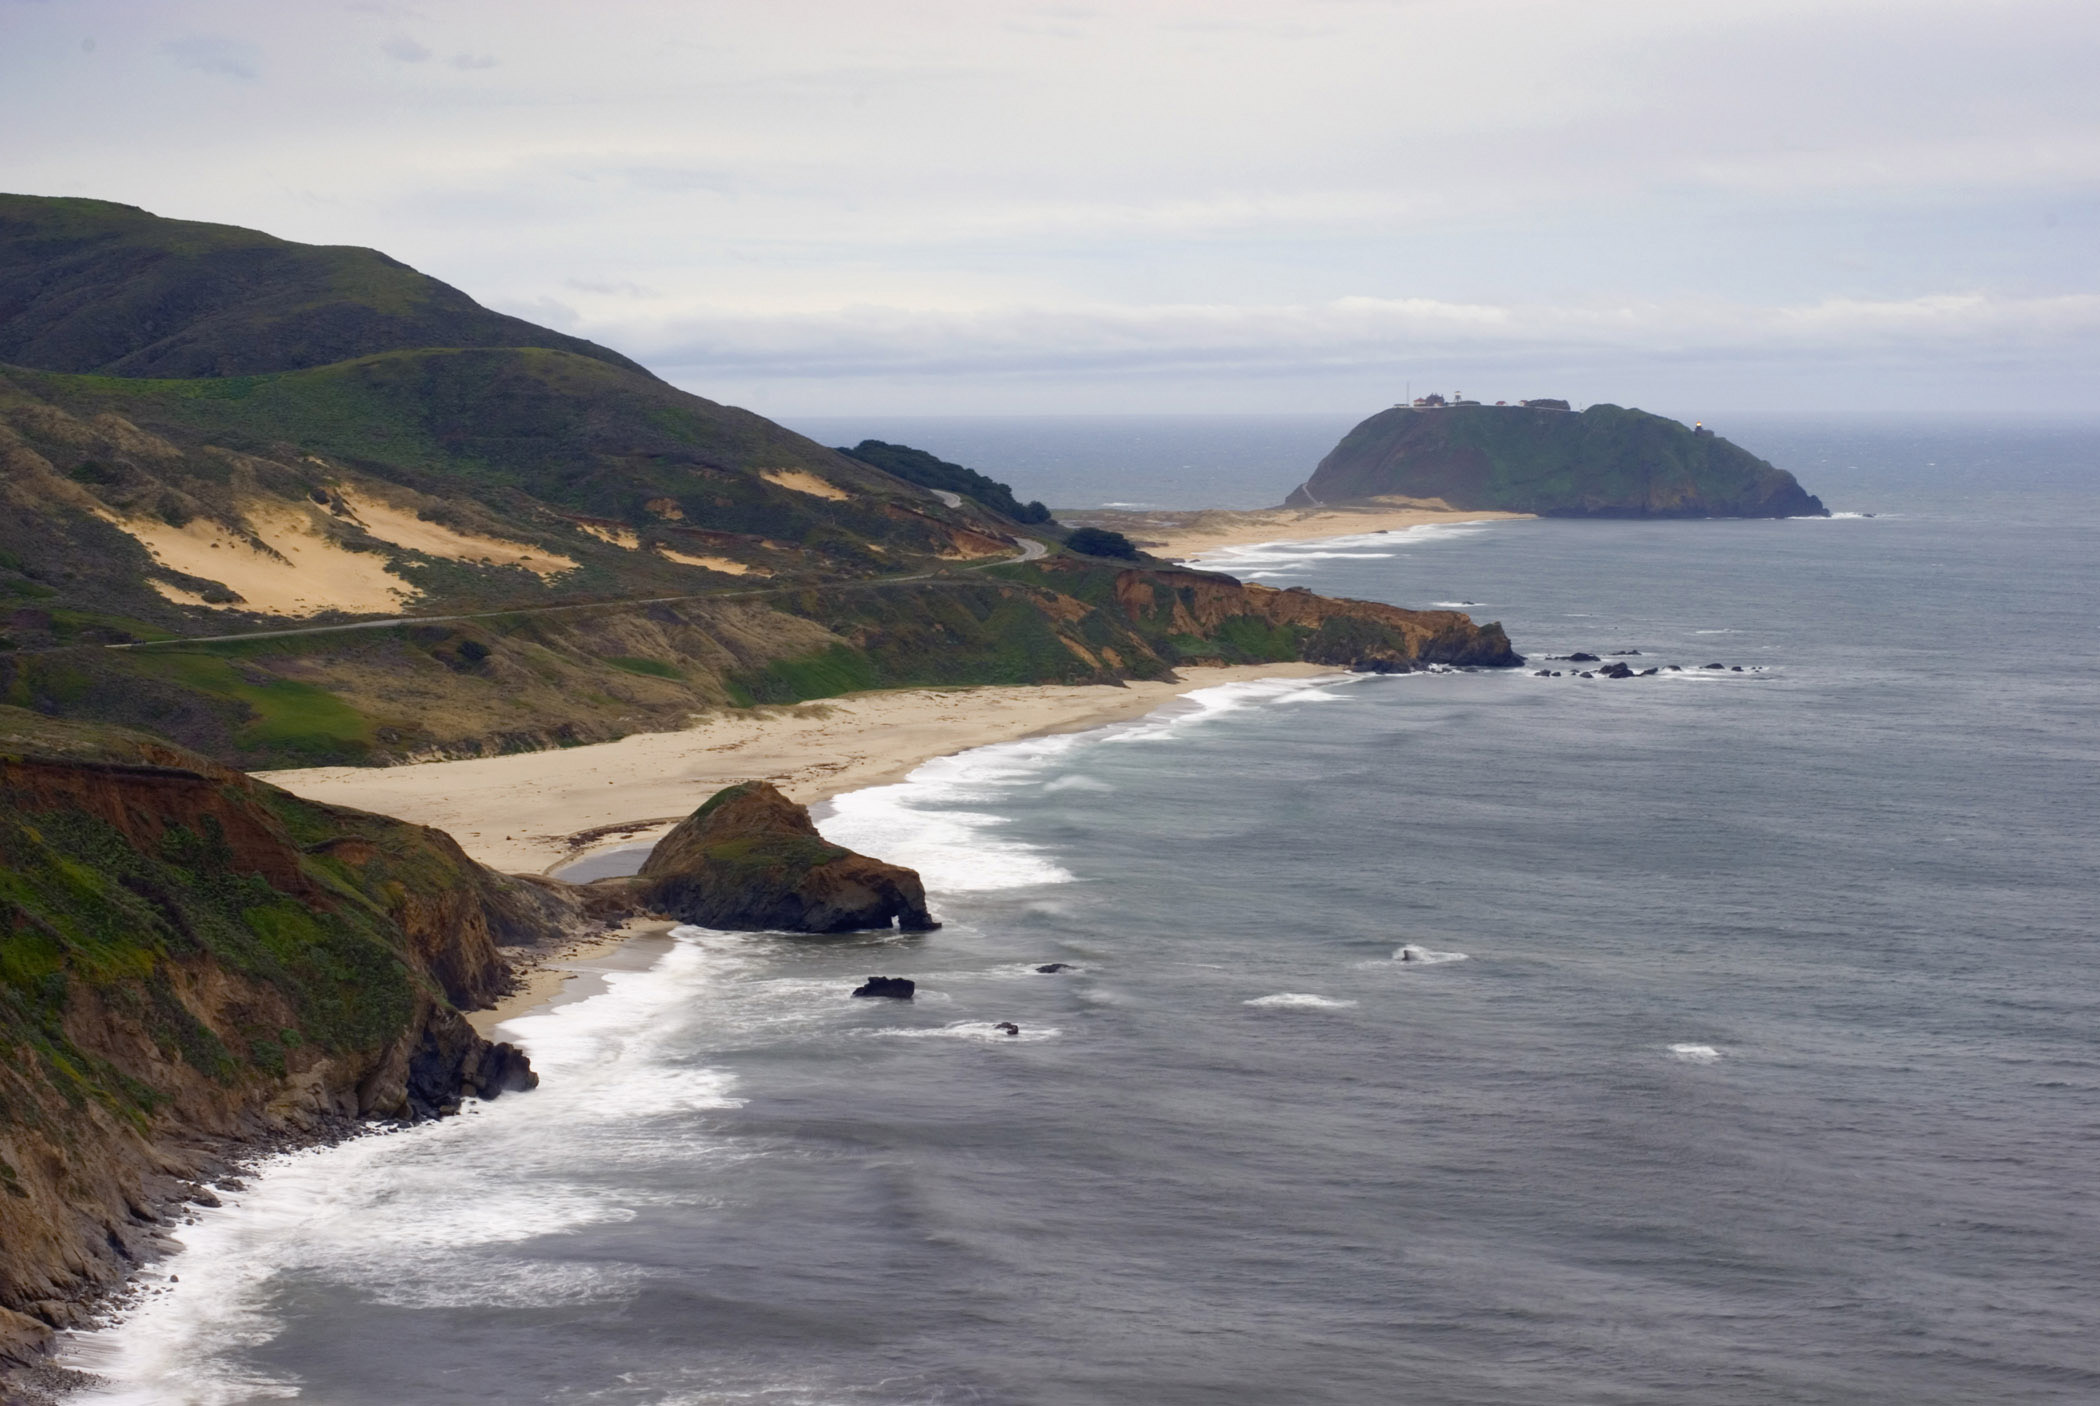 Point Sur seascape on the Route 1 Californian highway following the scenic coastine